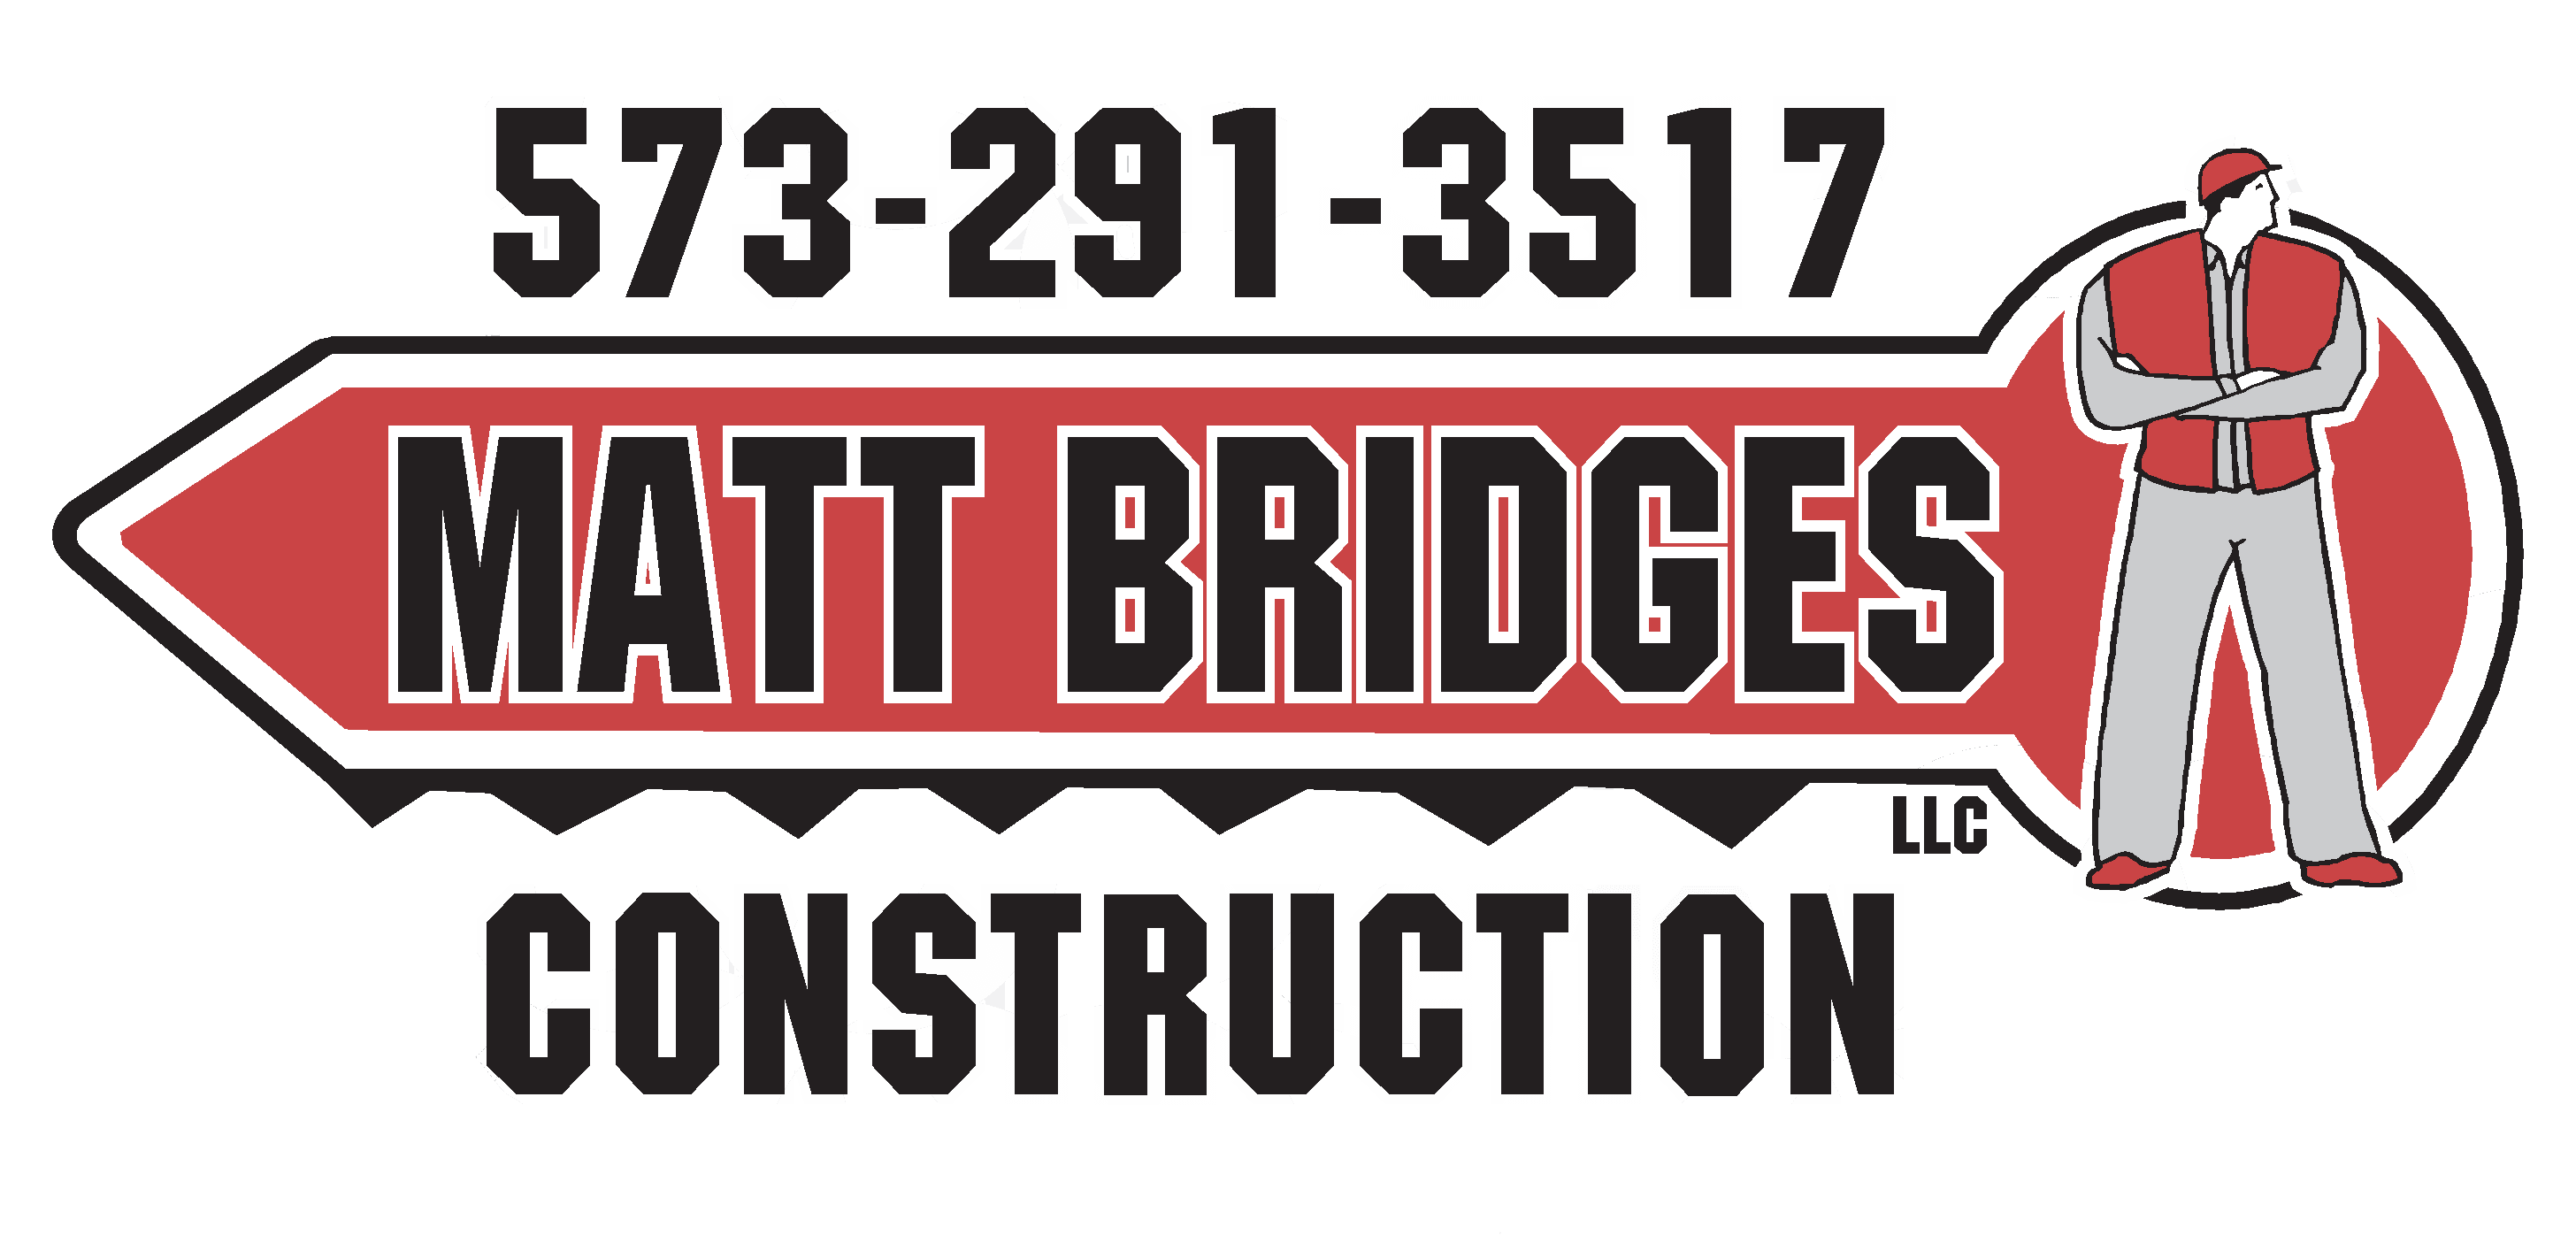 Call Matt Bridges Construction